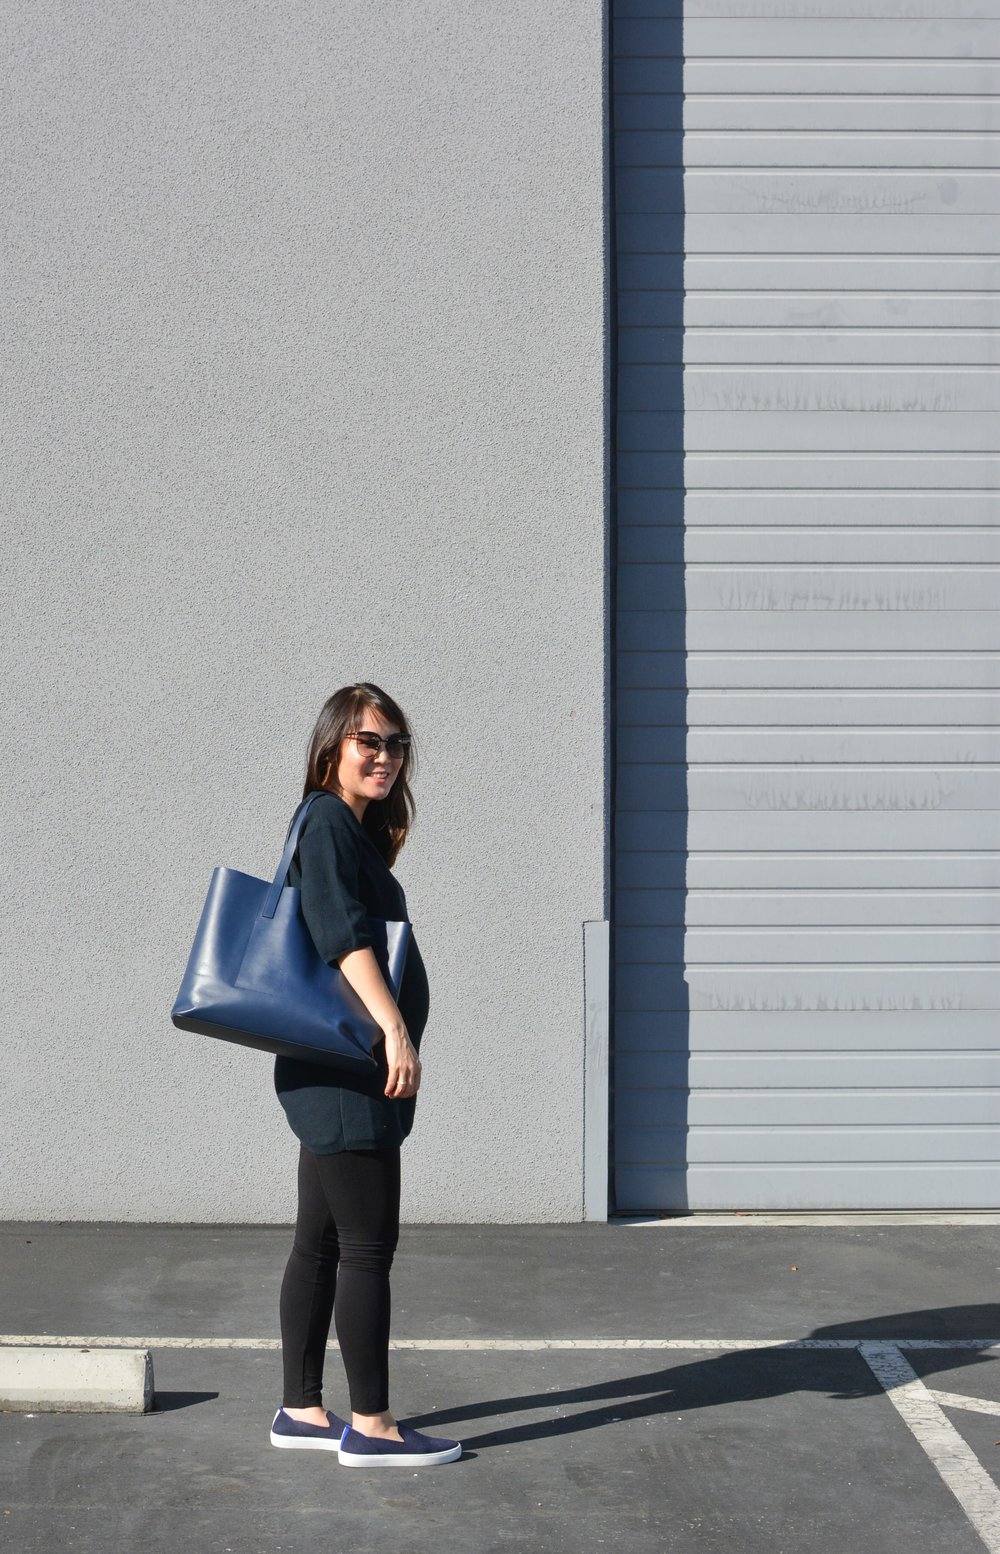 Everlane Review Day Market Tote (1 of 1)-min.jpg